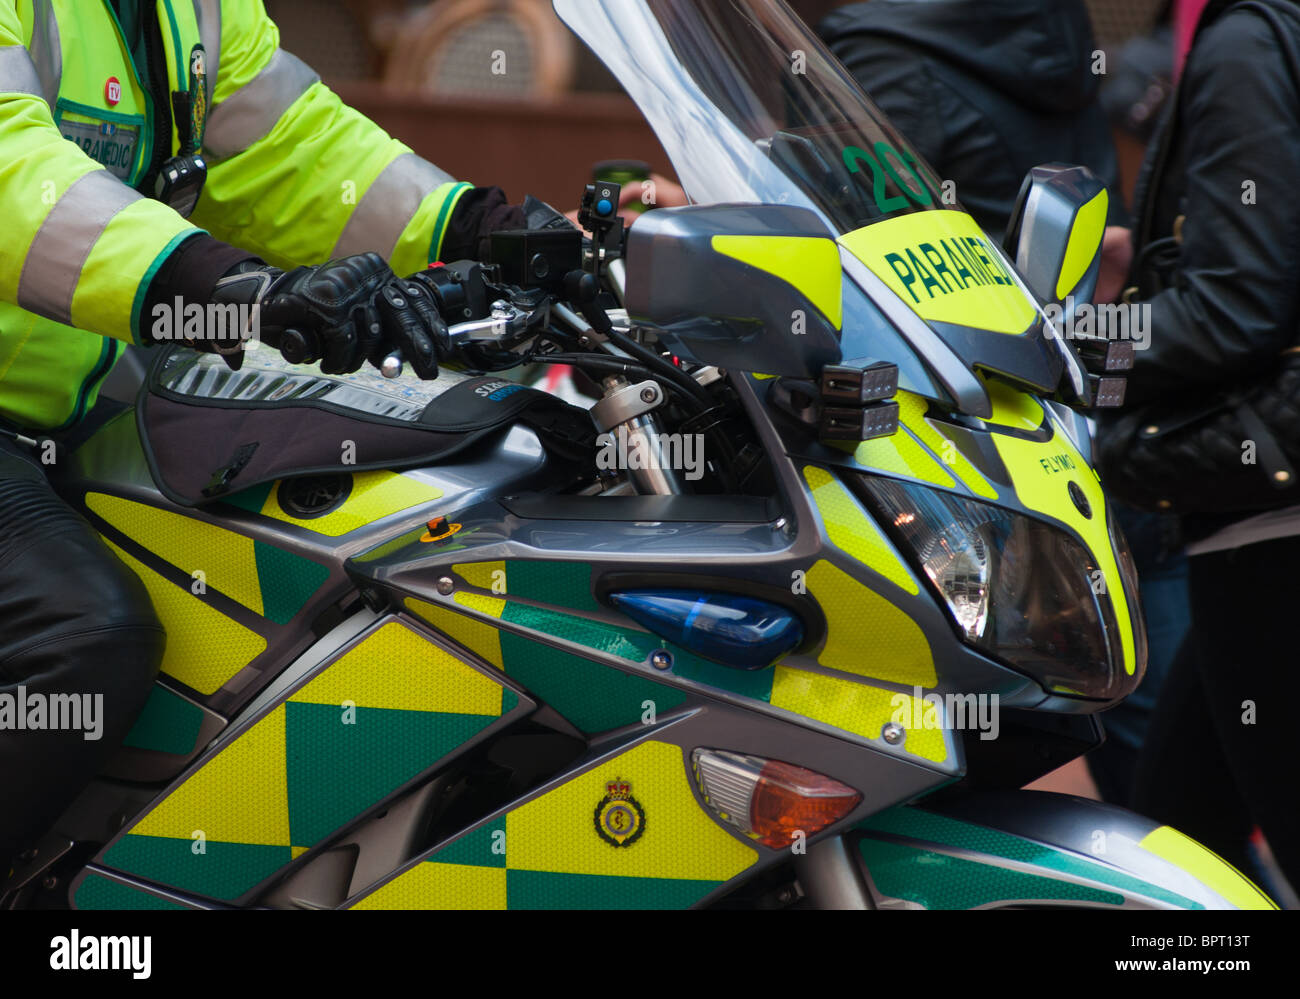 A paramedic on a motorbike, seem in Birmingham city centre, England - Stock Image